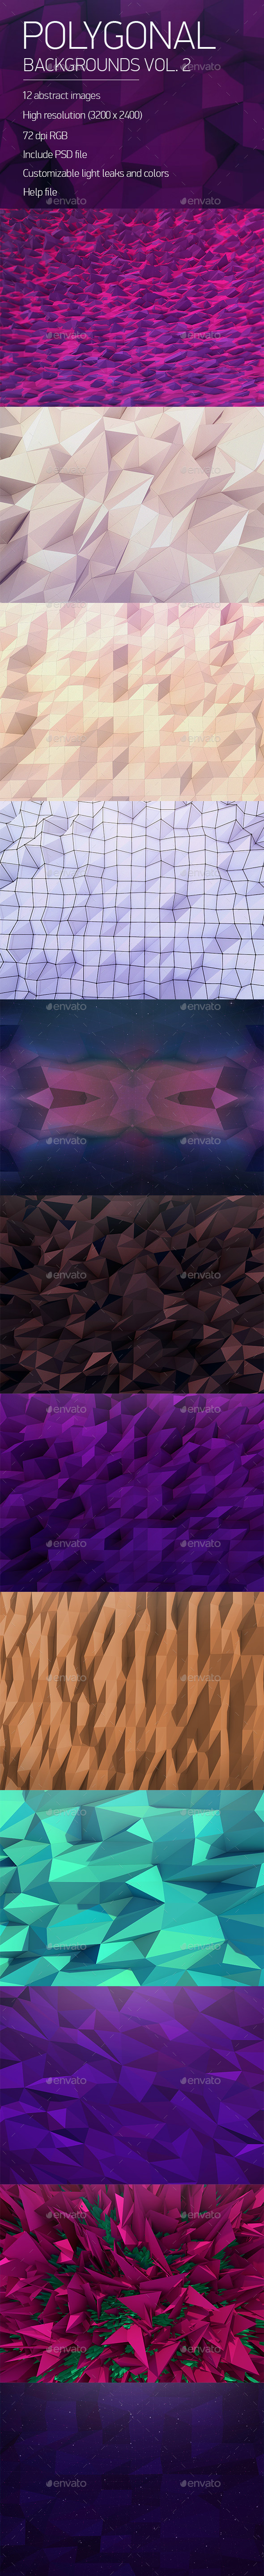 Polygonal Backgrounds Vol. 2